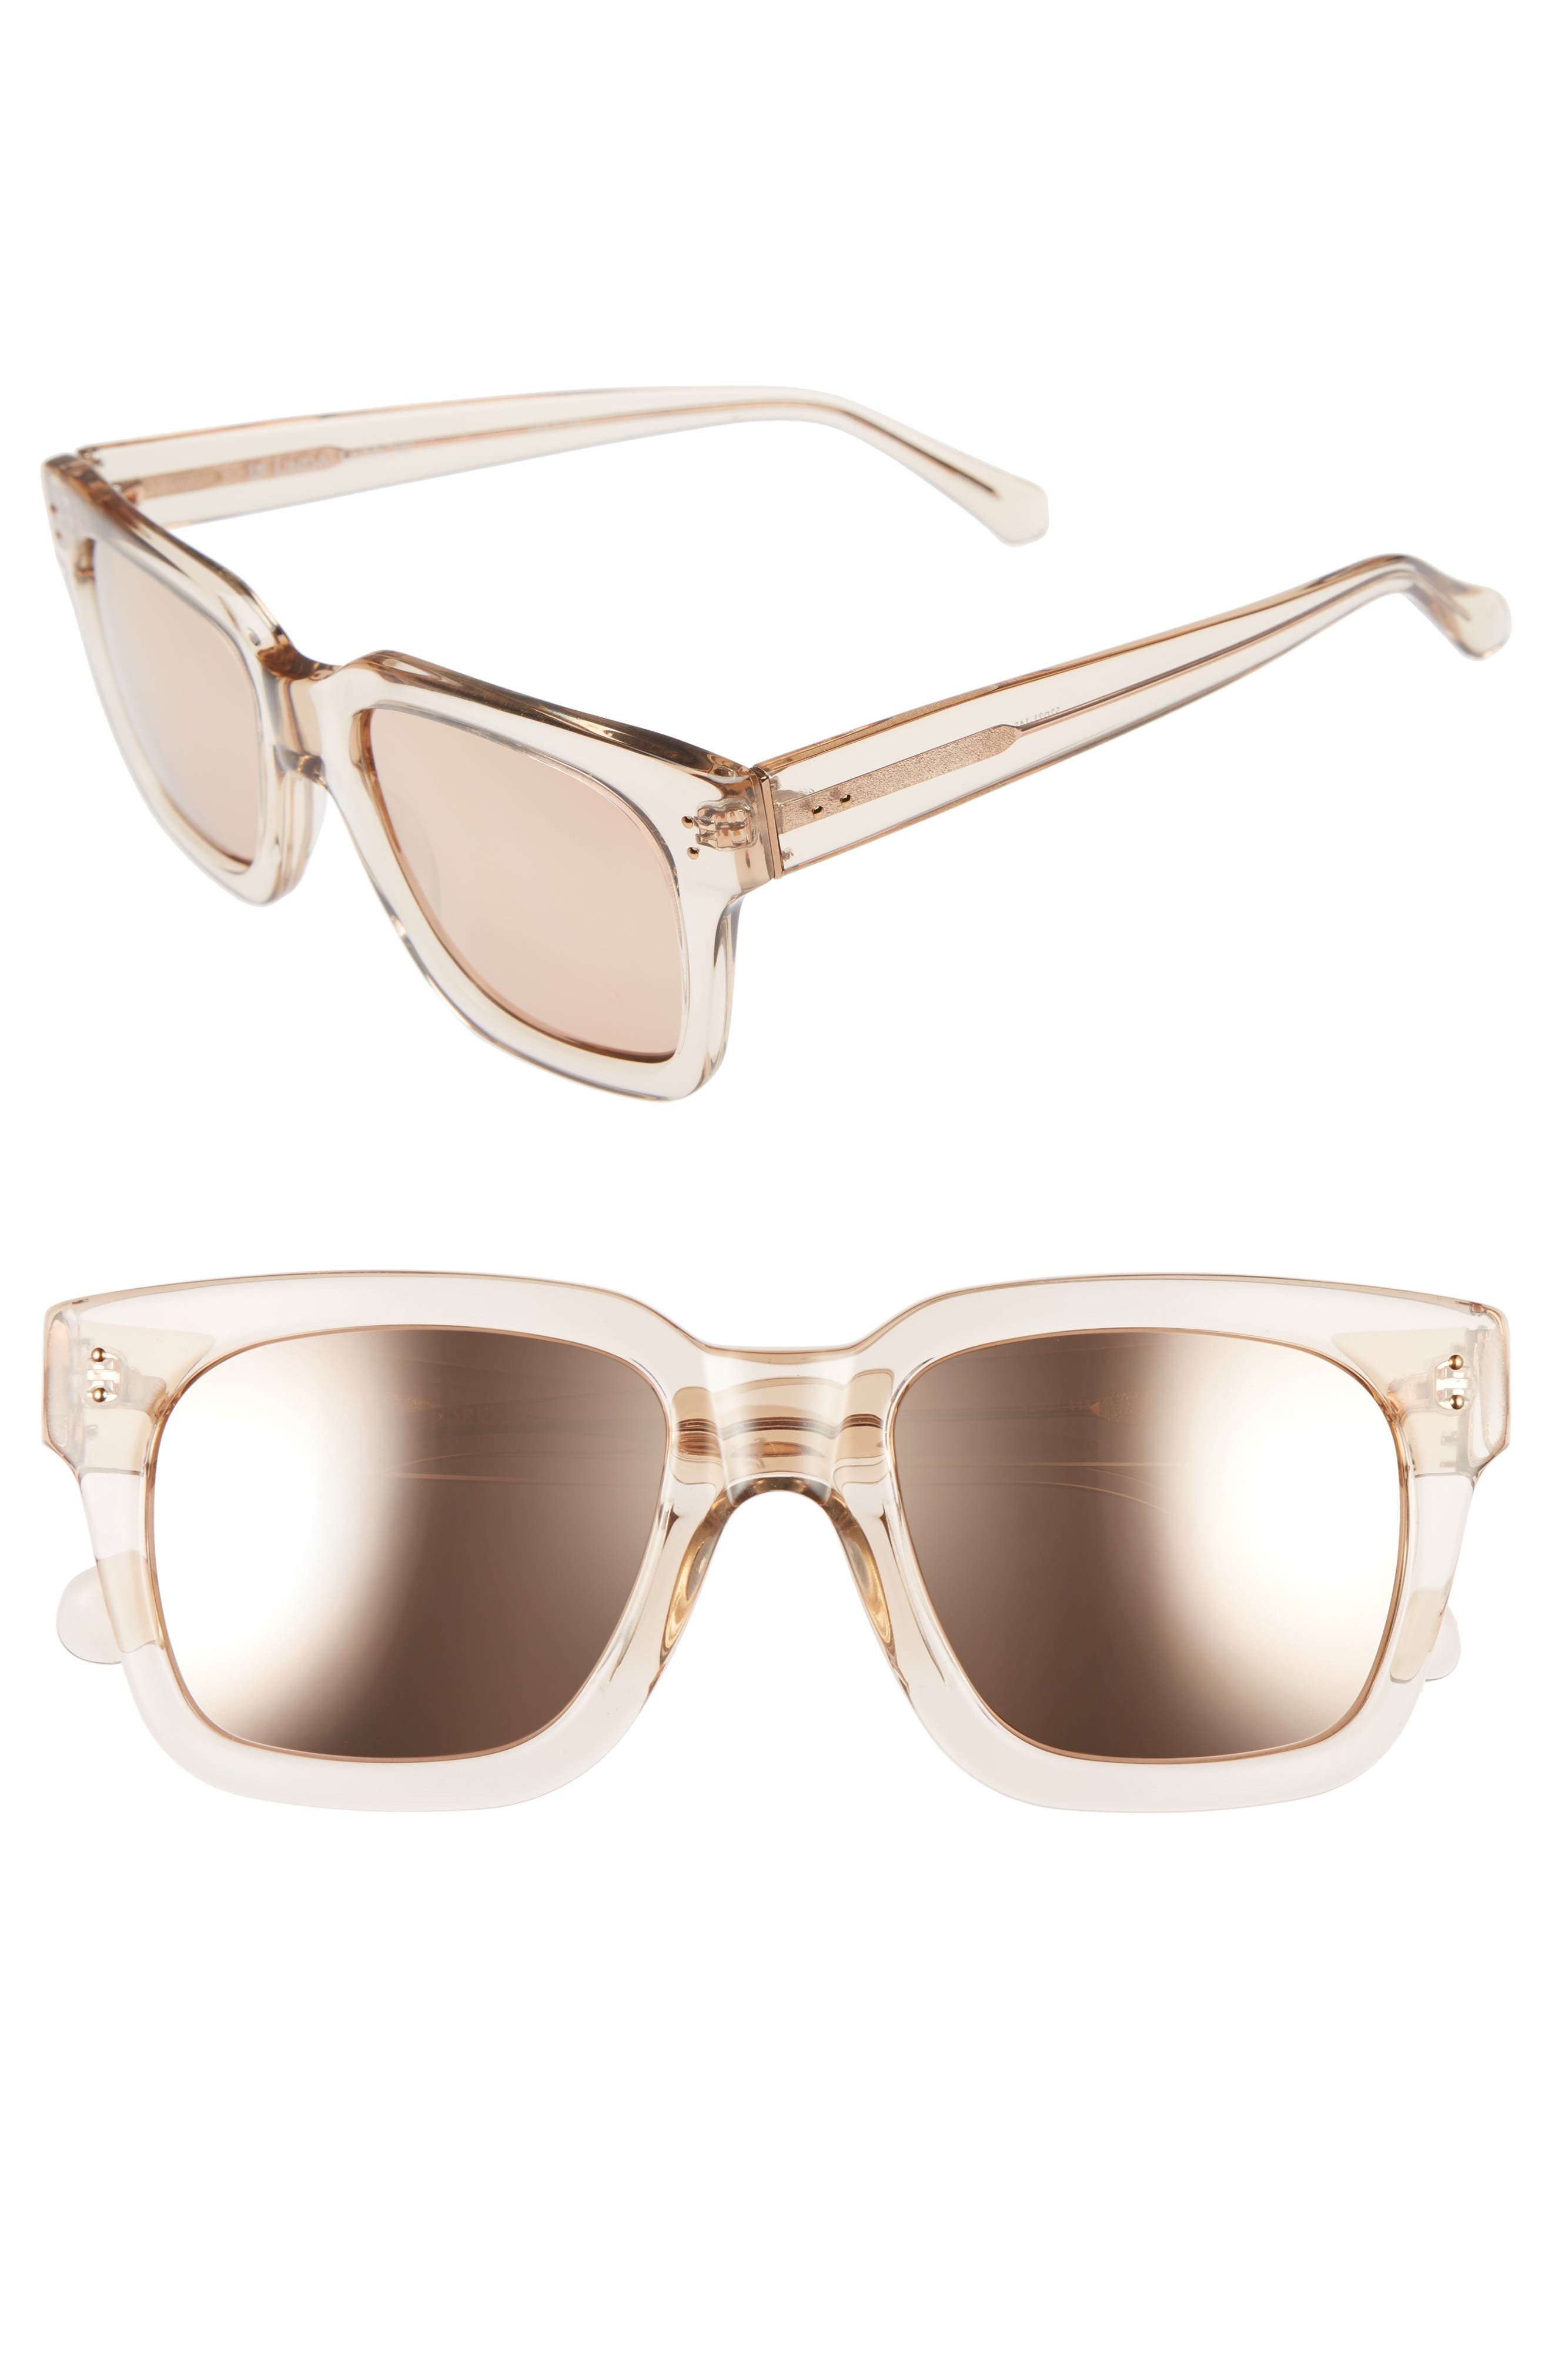 50mm Sunglasses,                         Main,                         color, Ash/ Rose Gold